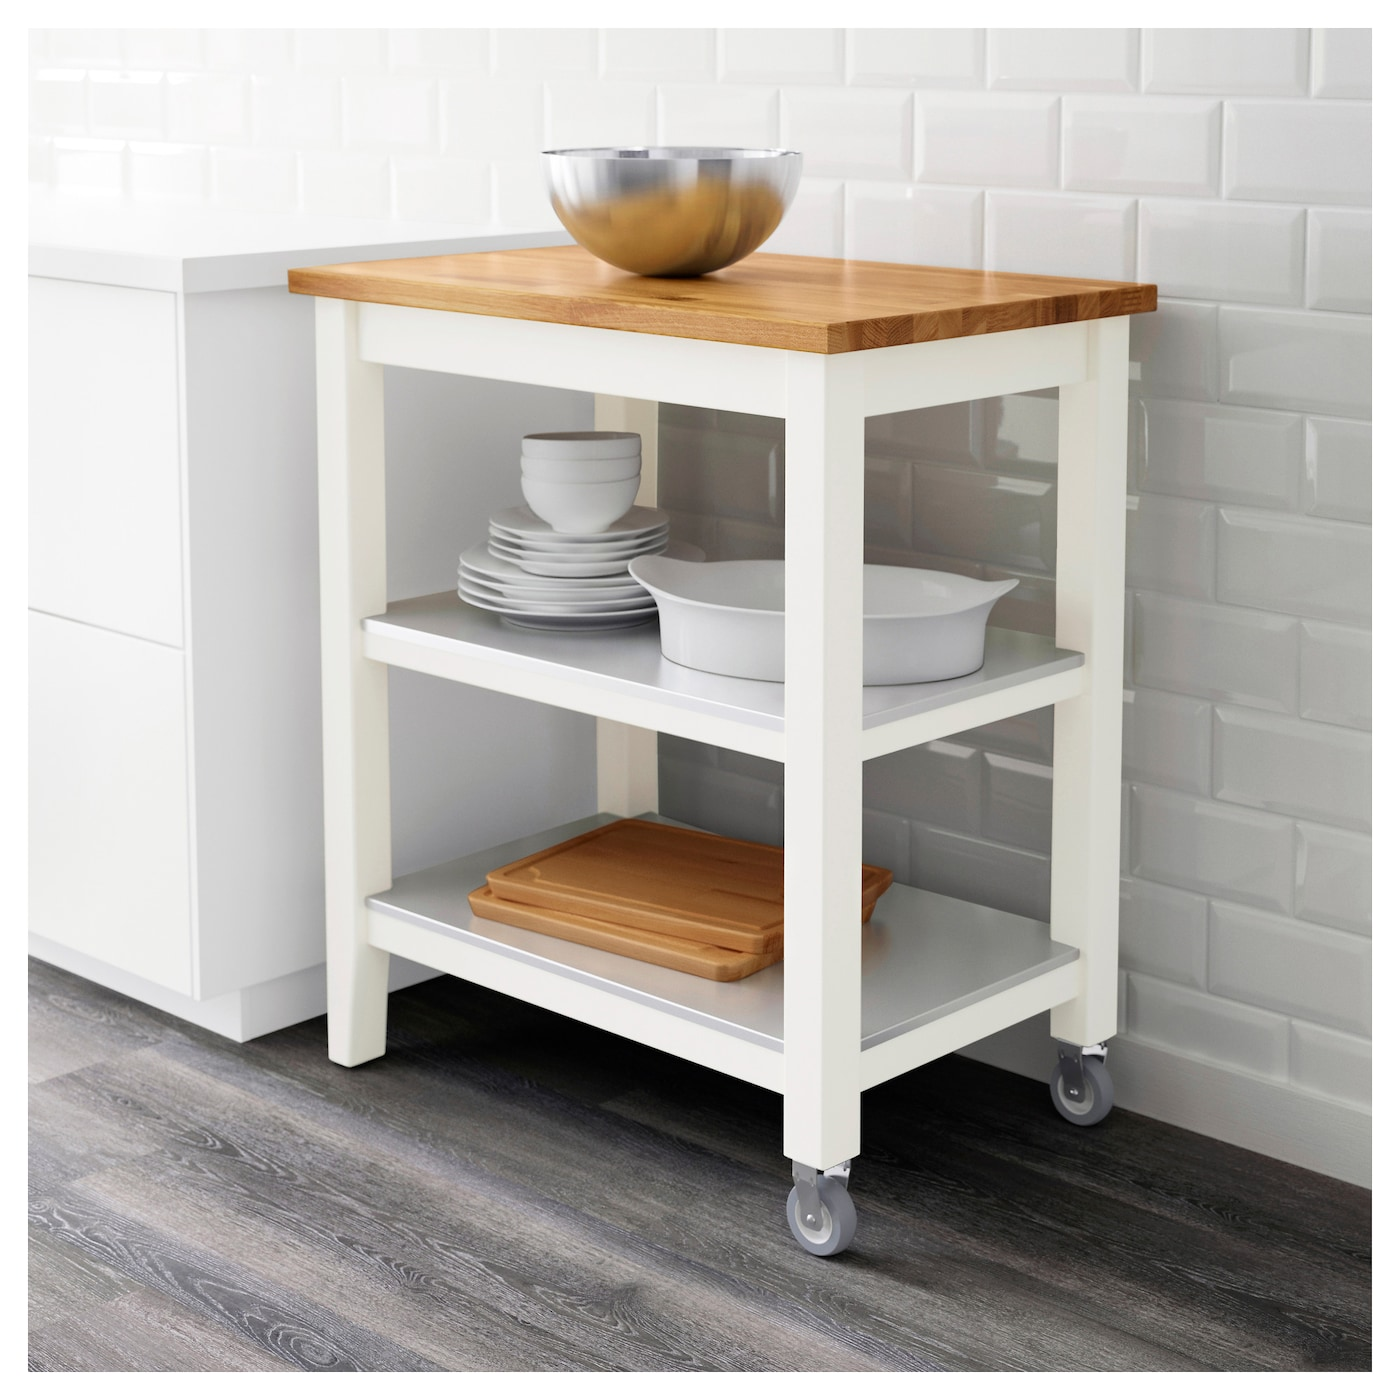 STENSTORP Kitchen Trolley White/oak 79x51x90 Cm